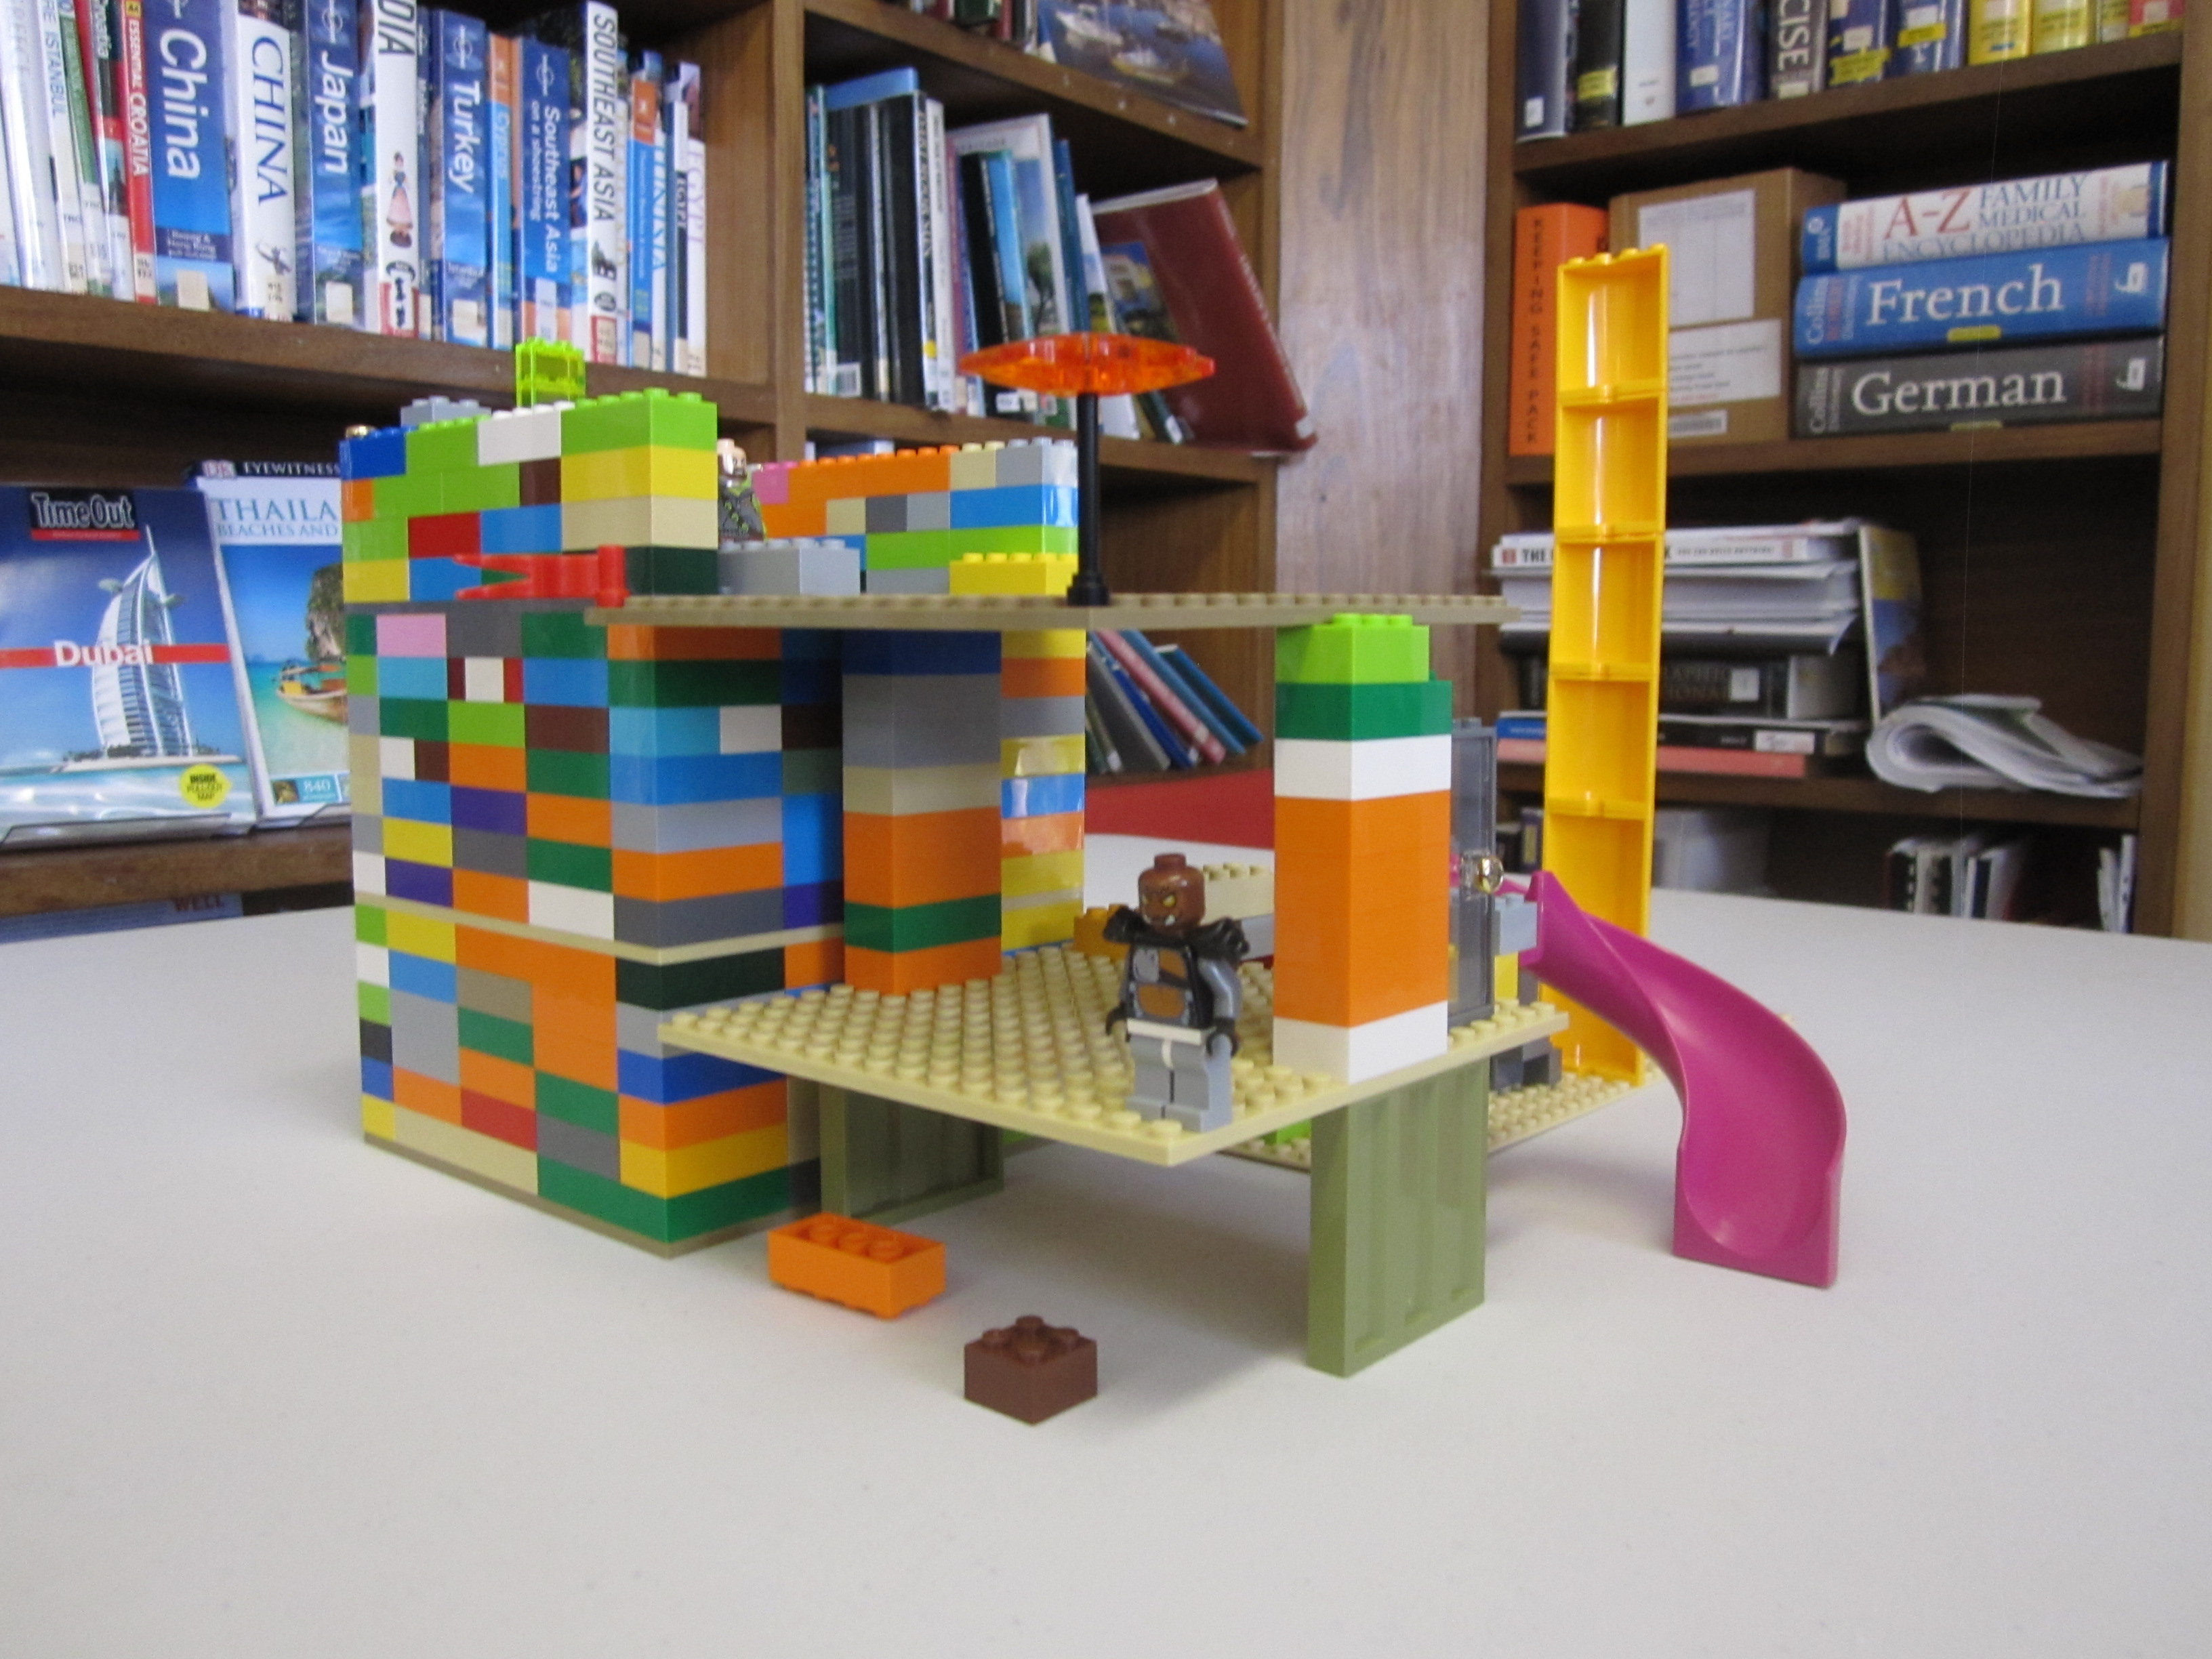 LEGO table available during all opening hours on Saturdays. Completely free, just pop along